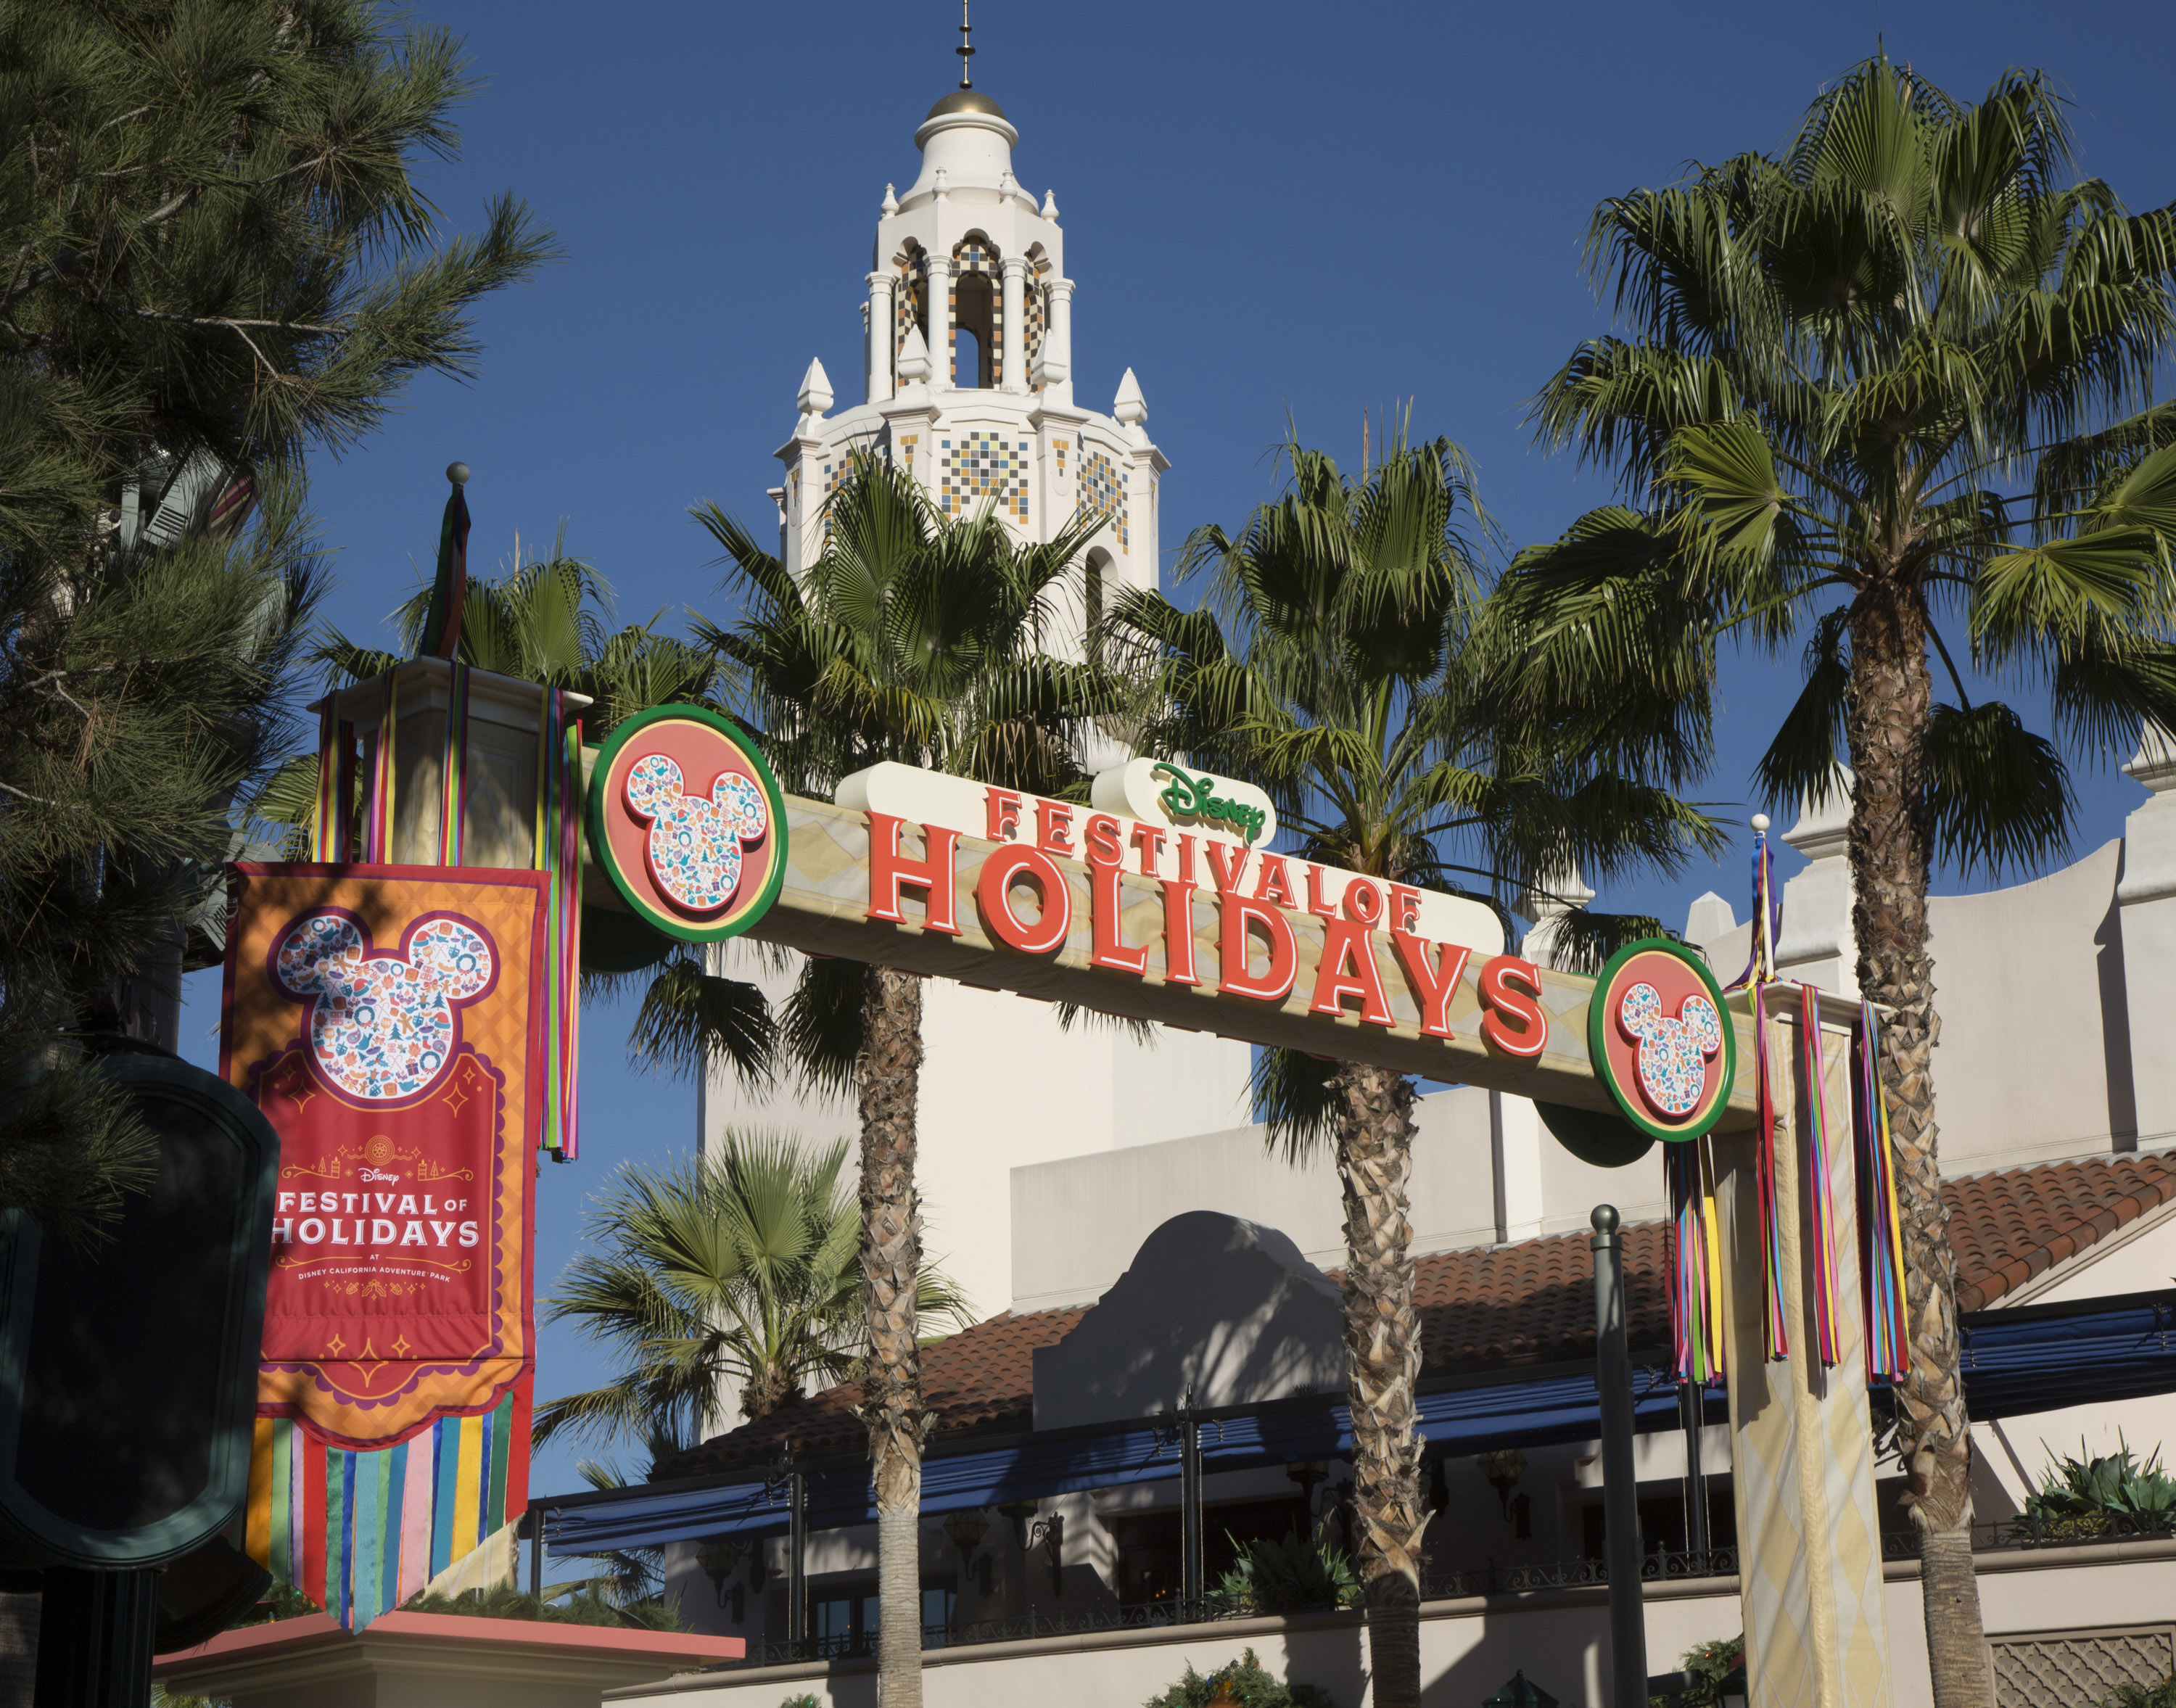 The new Festival of Holidays at the Disneyland Resort celebrates holiday festivities of diverse cultures with music, dance and craft-making, plus food at the Festive Foods Marketplace.